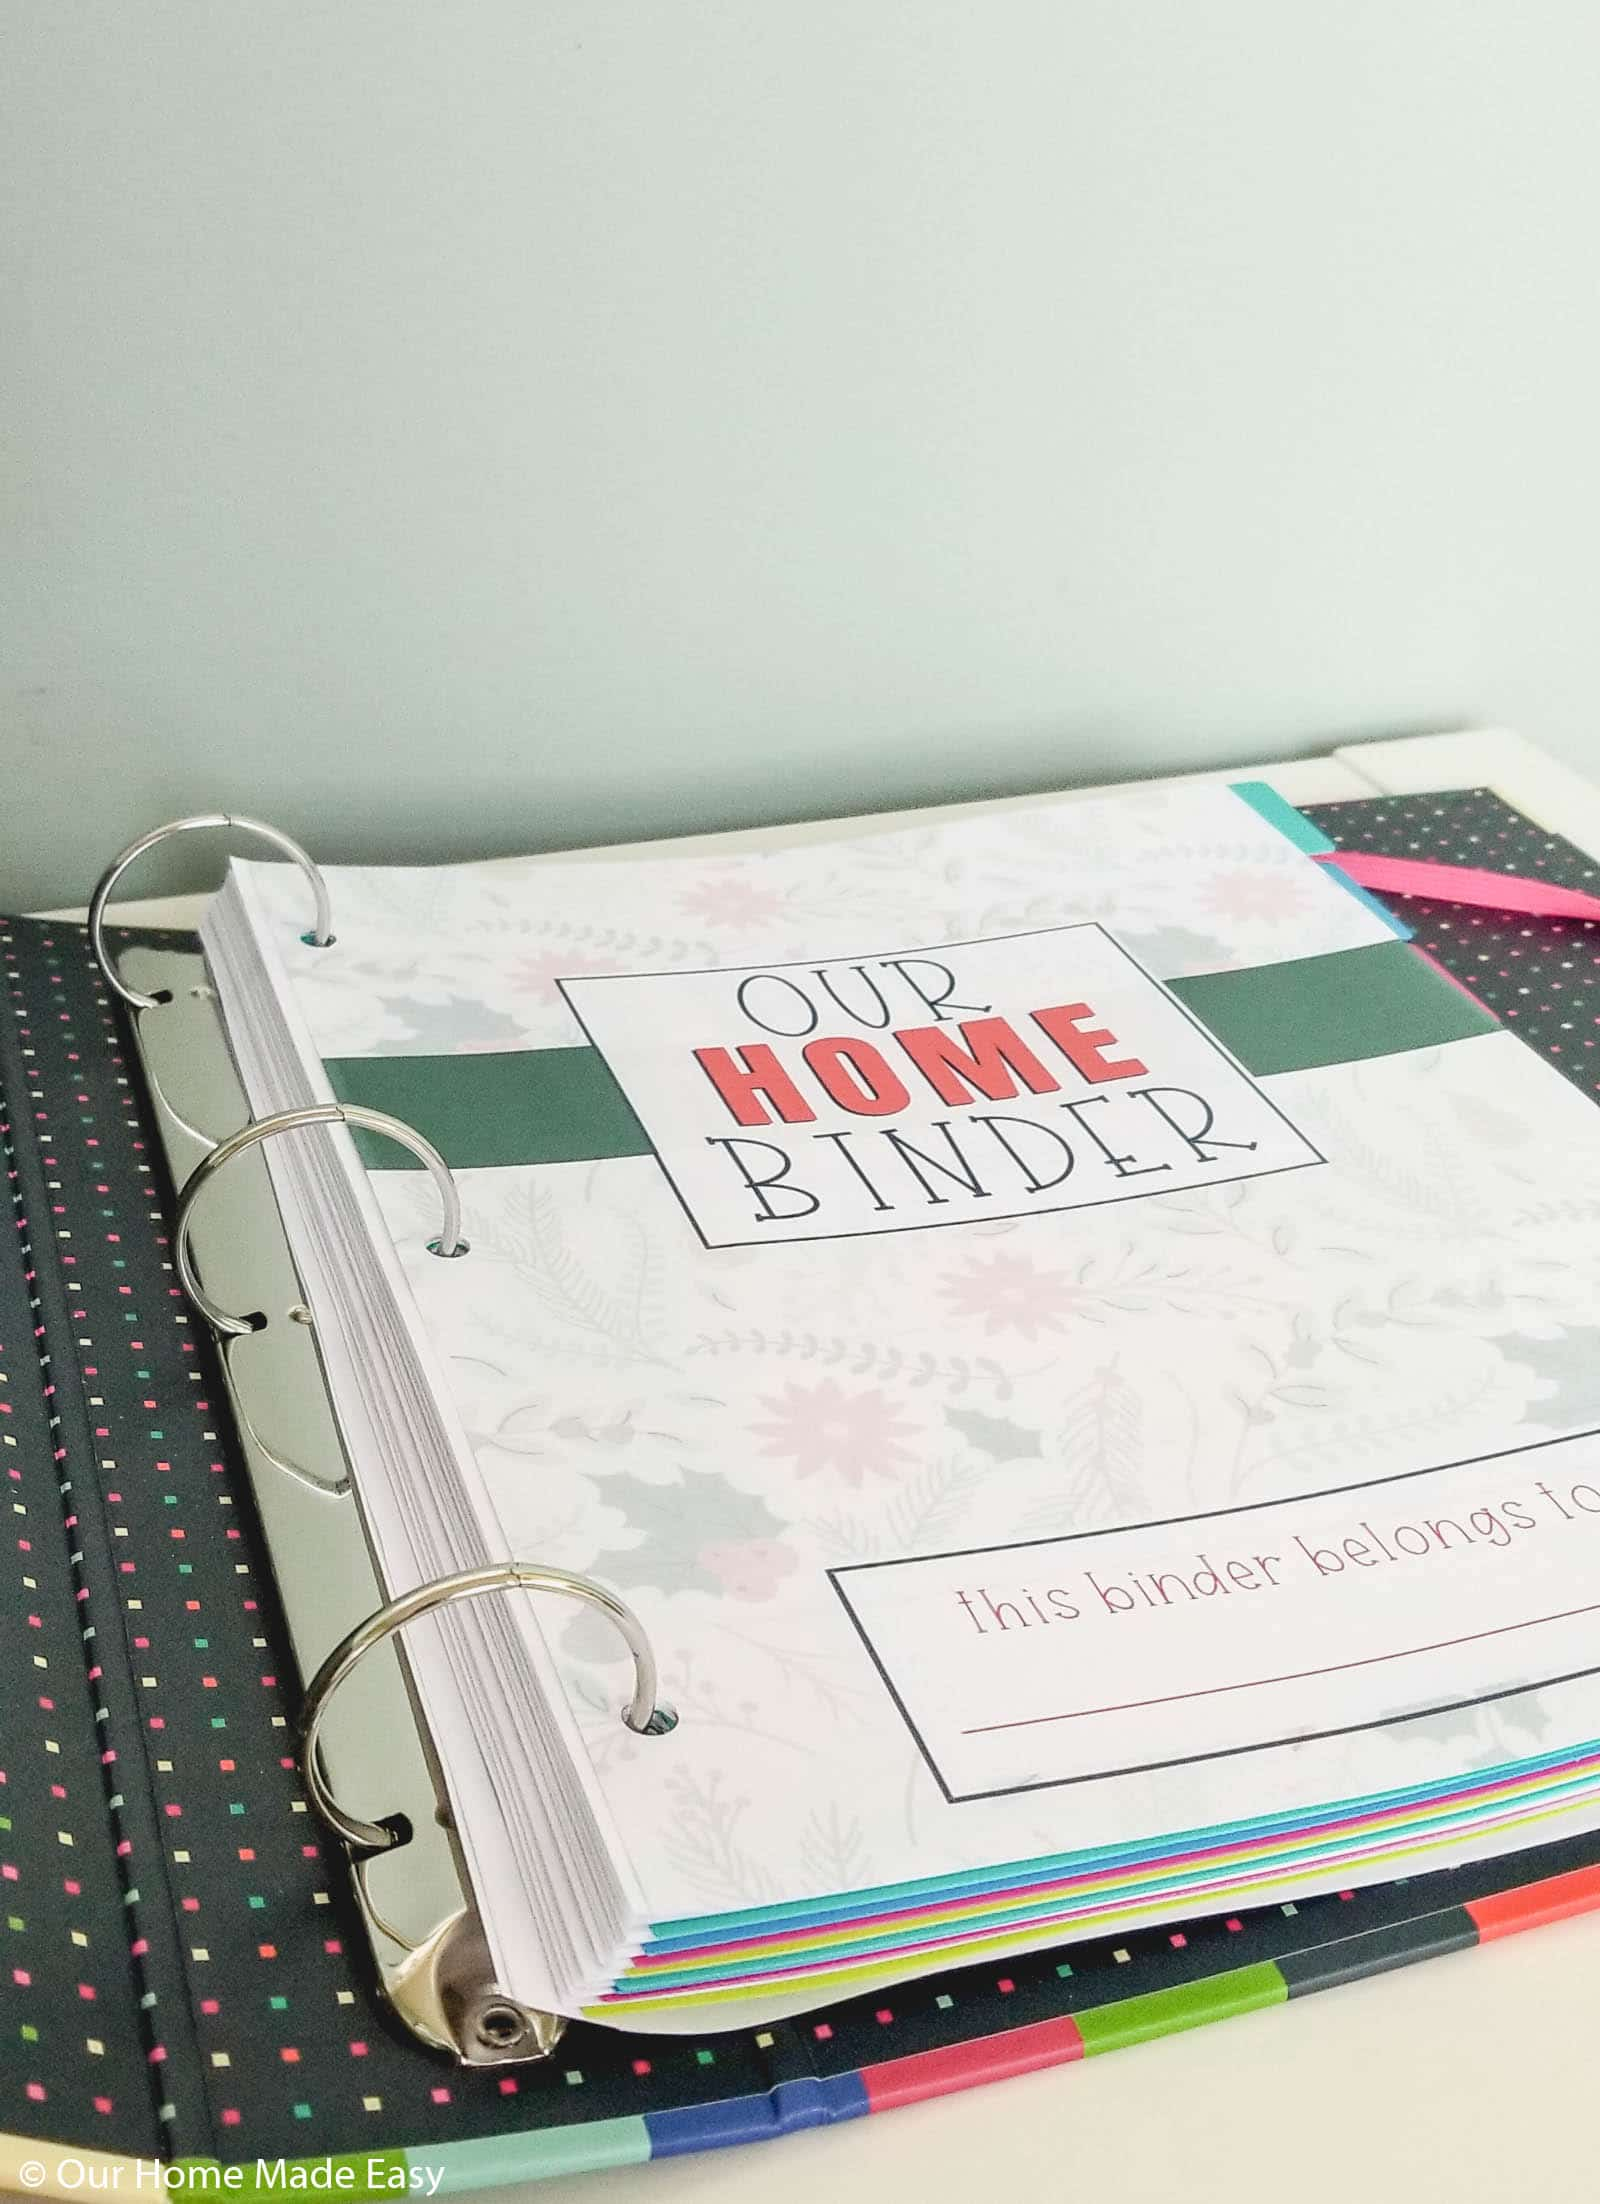 The Home Binder is our command center for everything home organization.